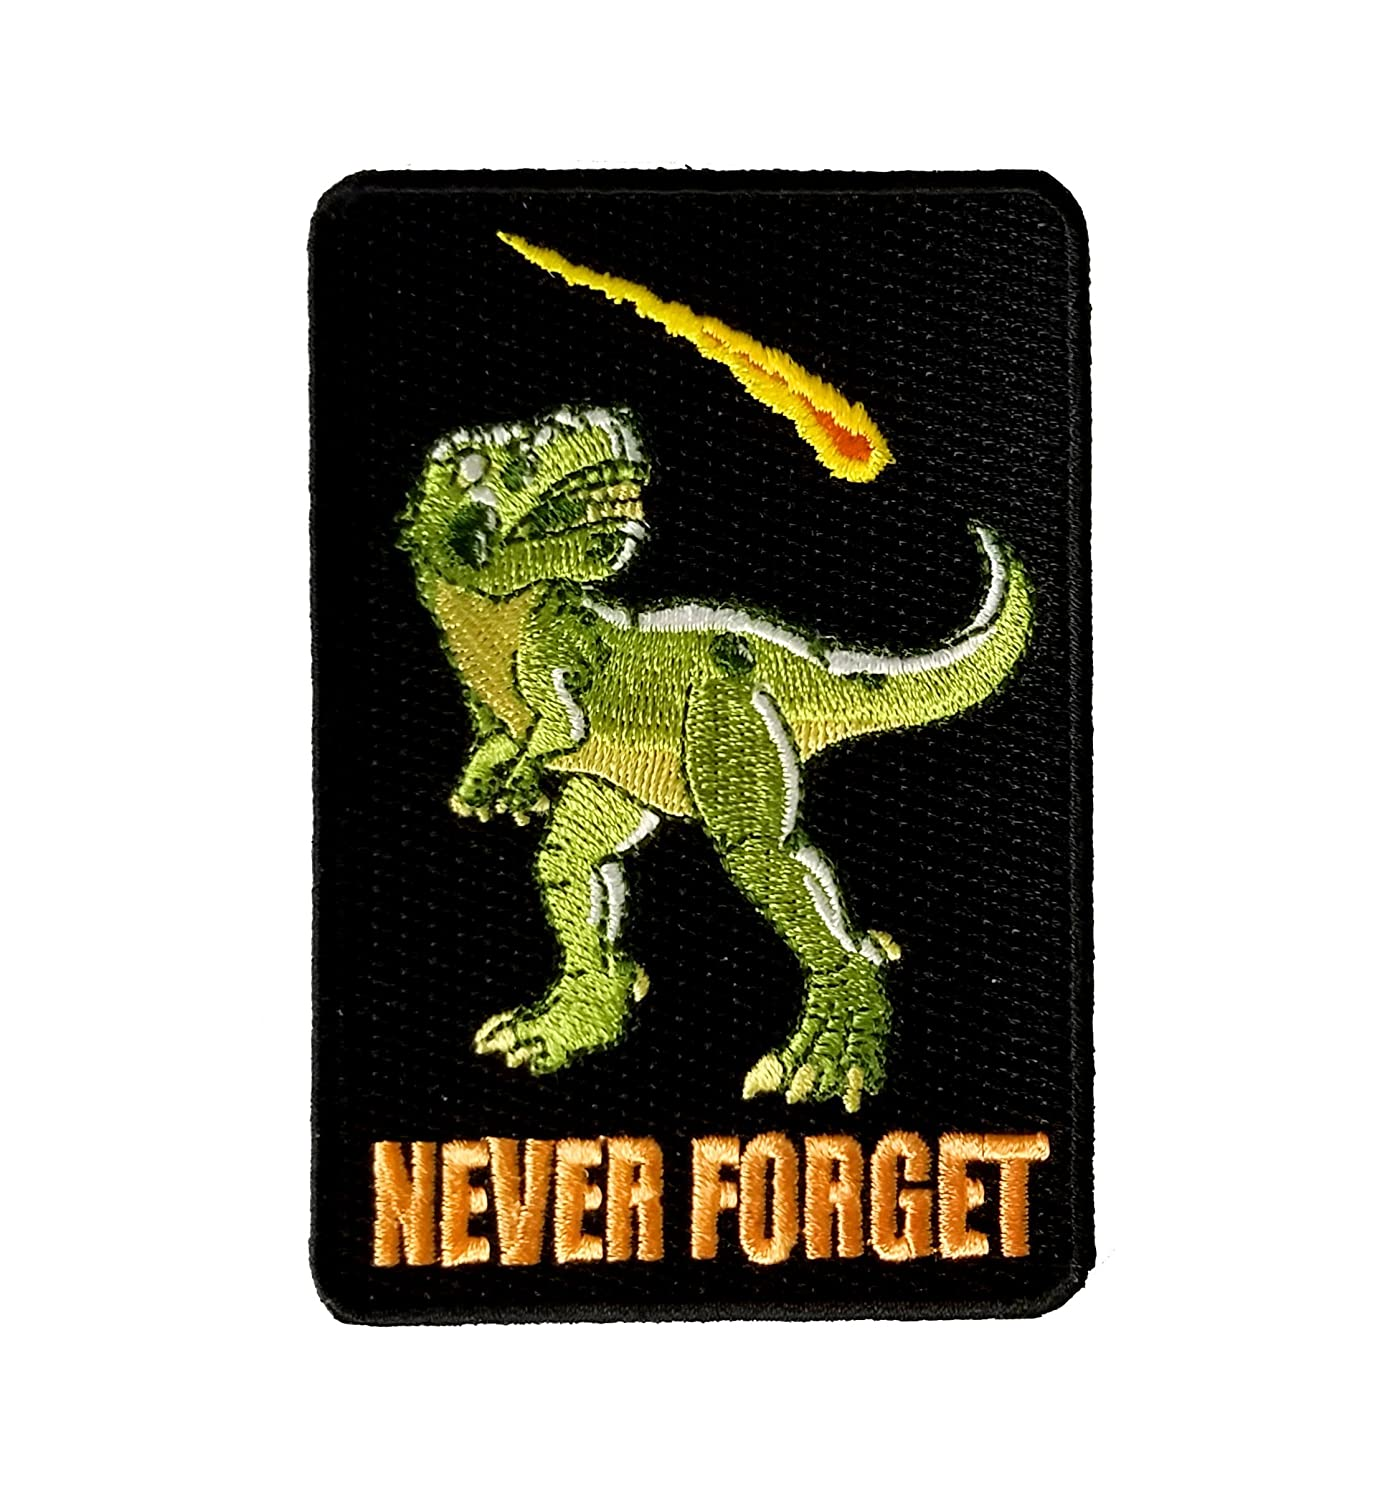 """Dinosaur Never Forget"" Asteroid & Tyrannosaurus Rex Humor - Iron on Embroidered Patch Applique 4337018516"